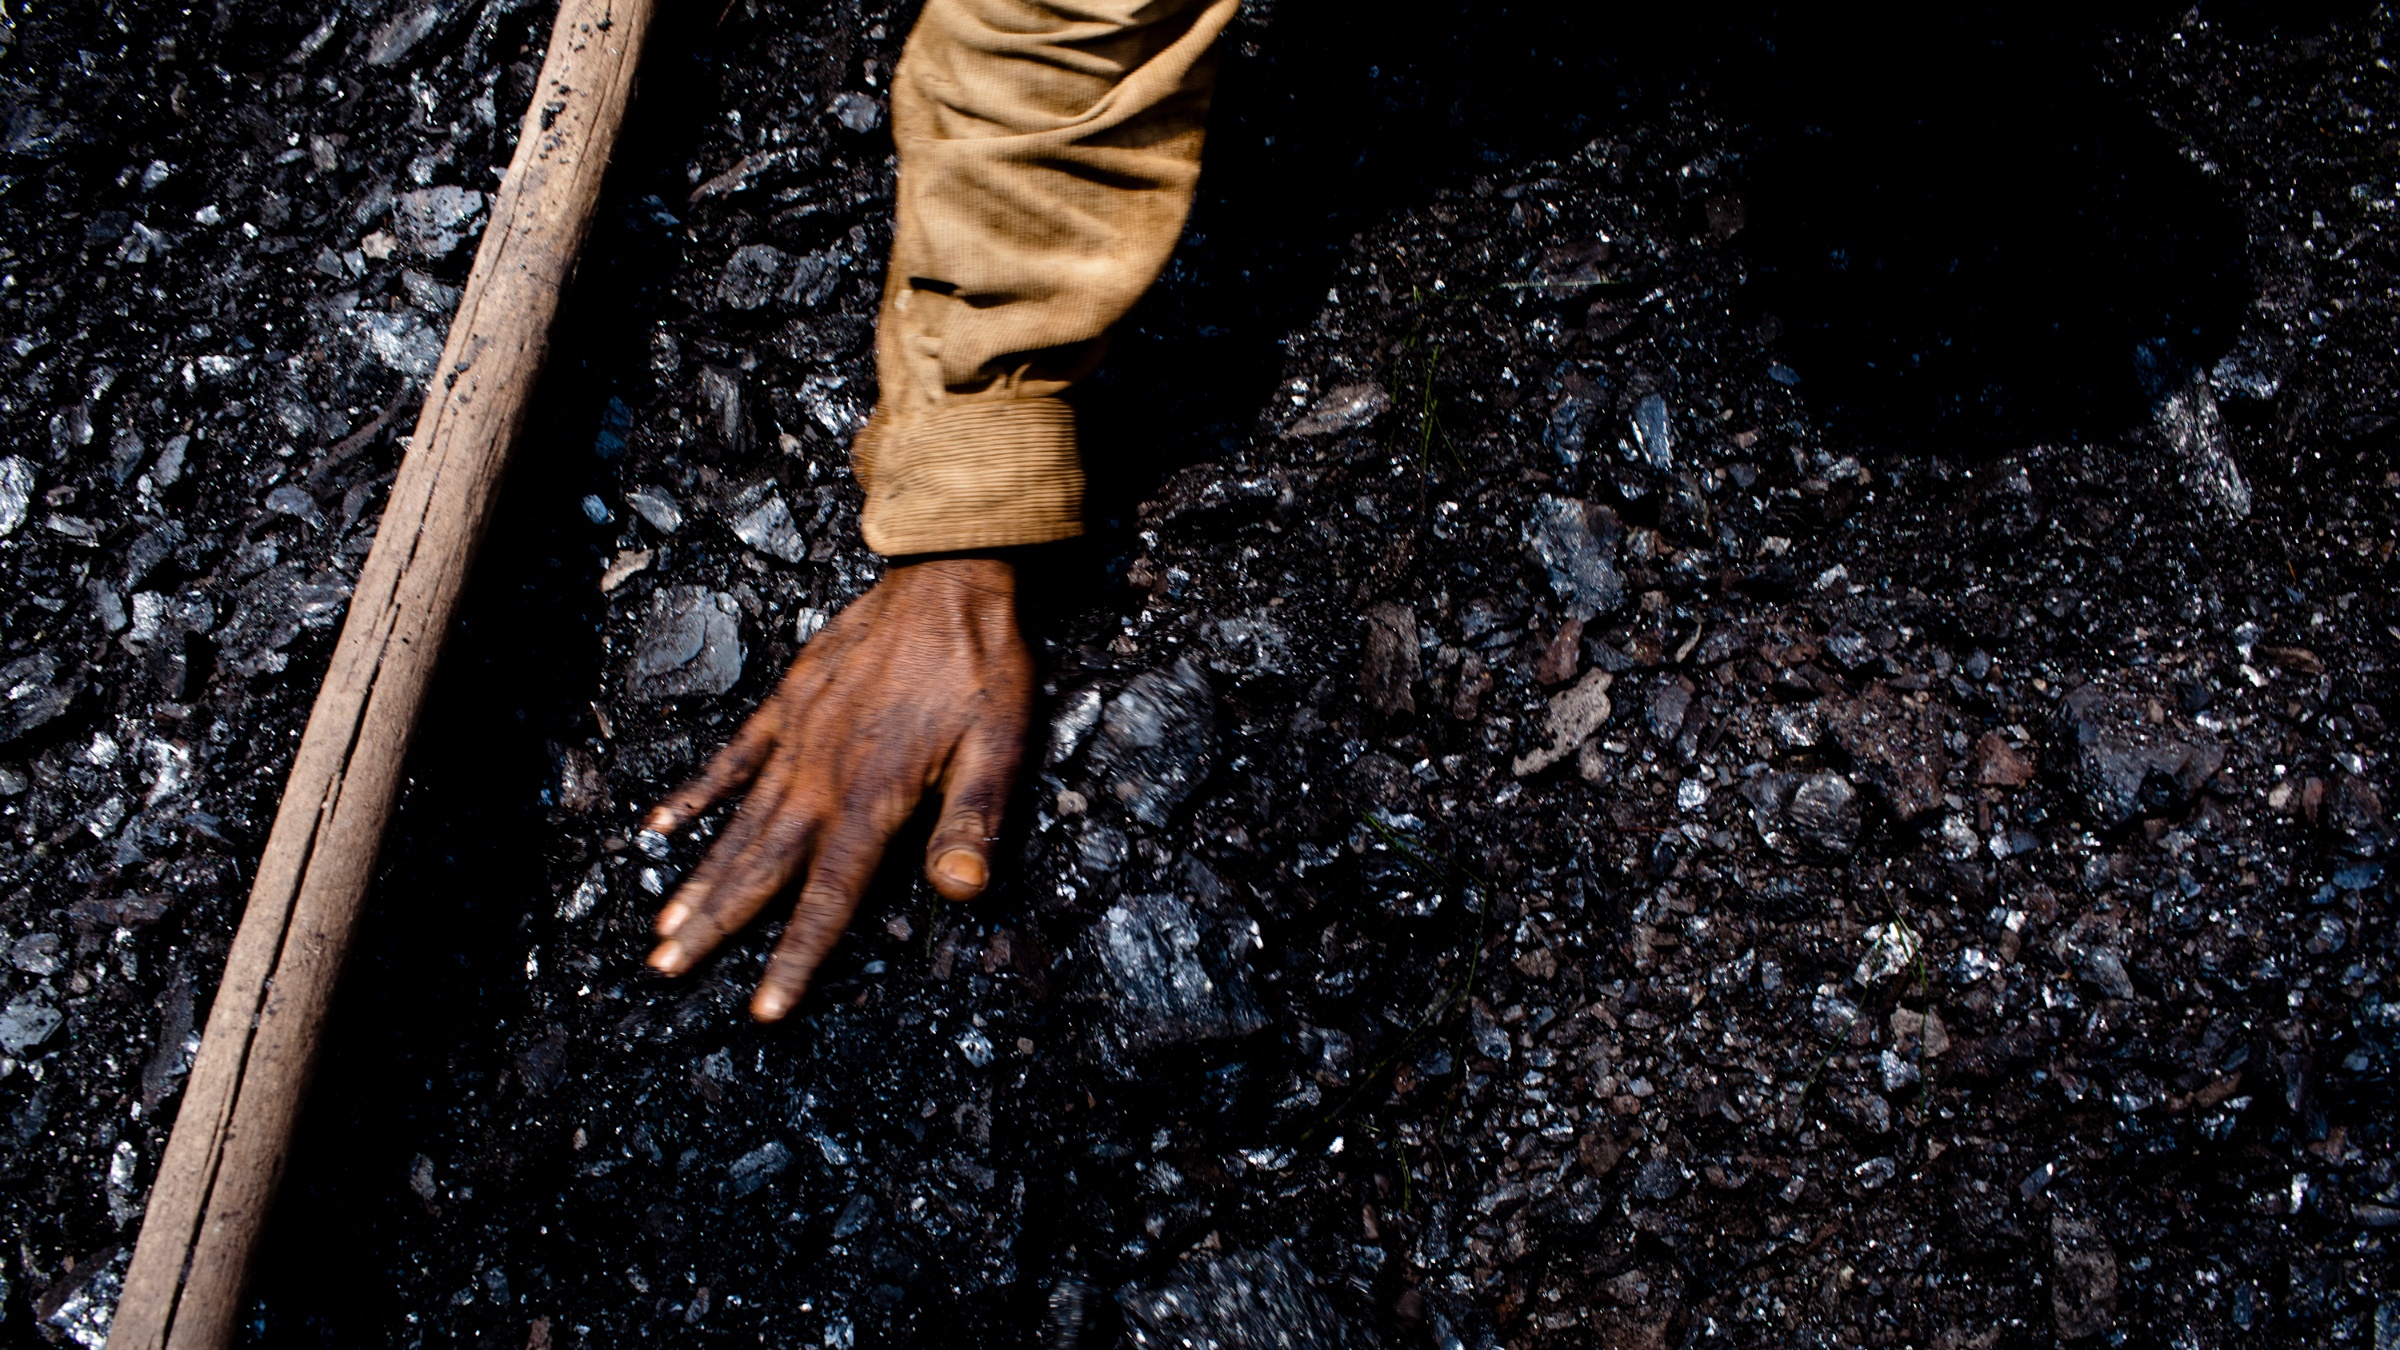 BofA is having a hard time getting its hands out of the coal business.